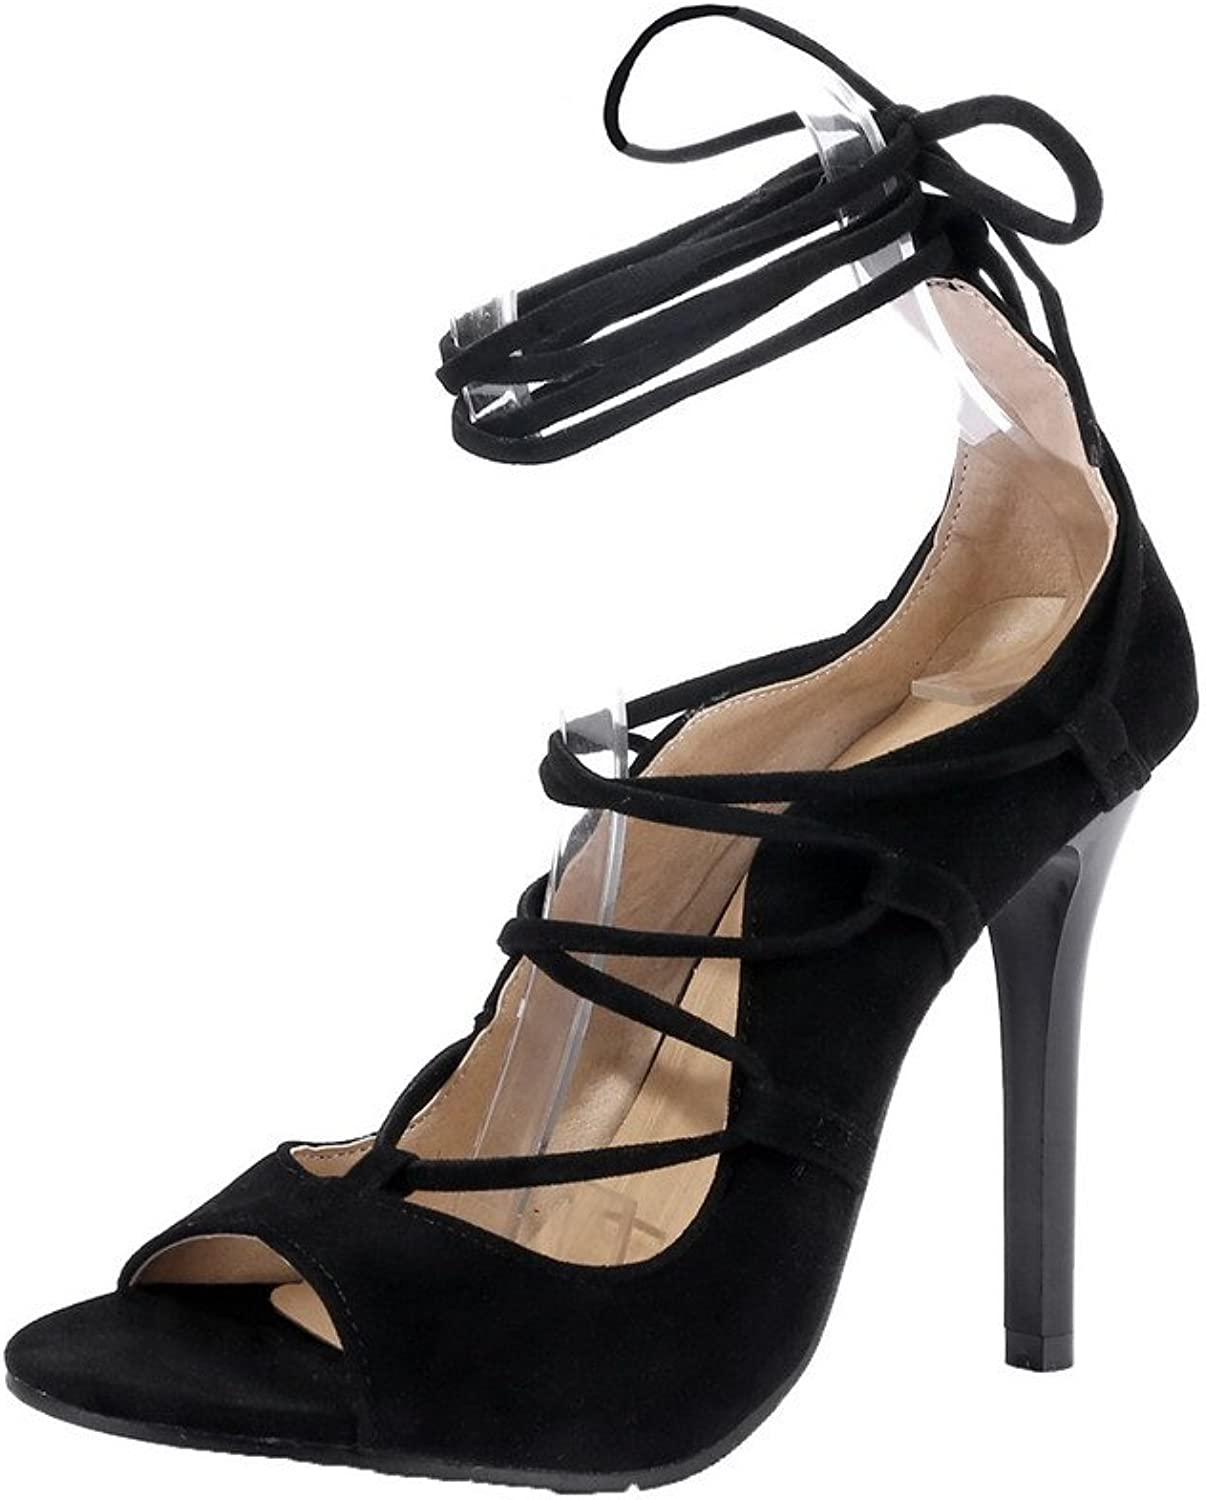 AllhqFashion Women's Lace-up High-Heels Frosted Solid Open-Toe Sandals